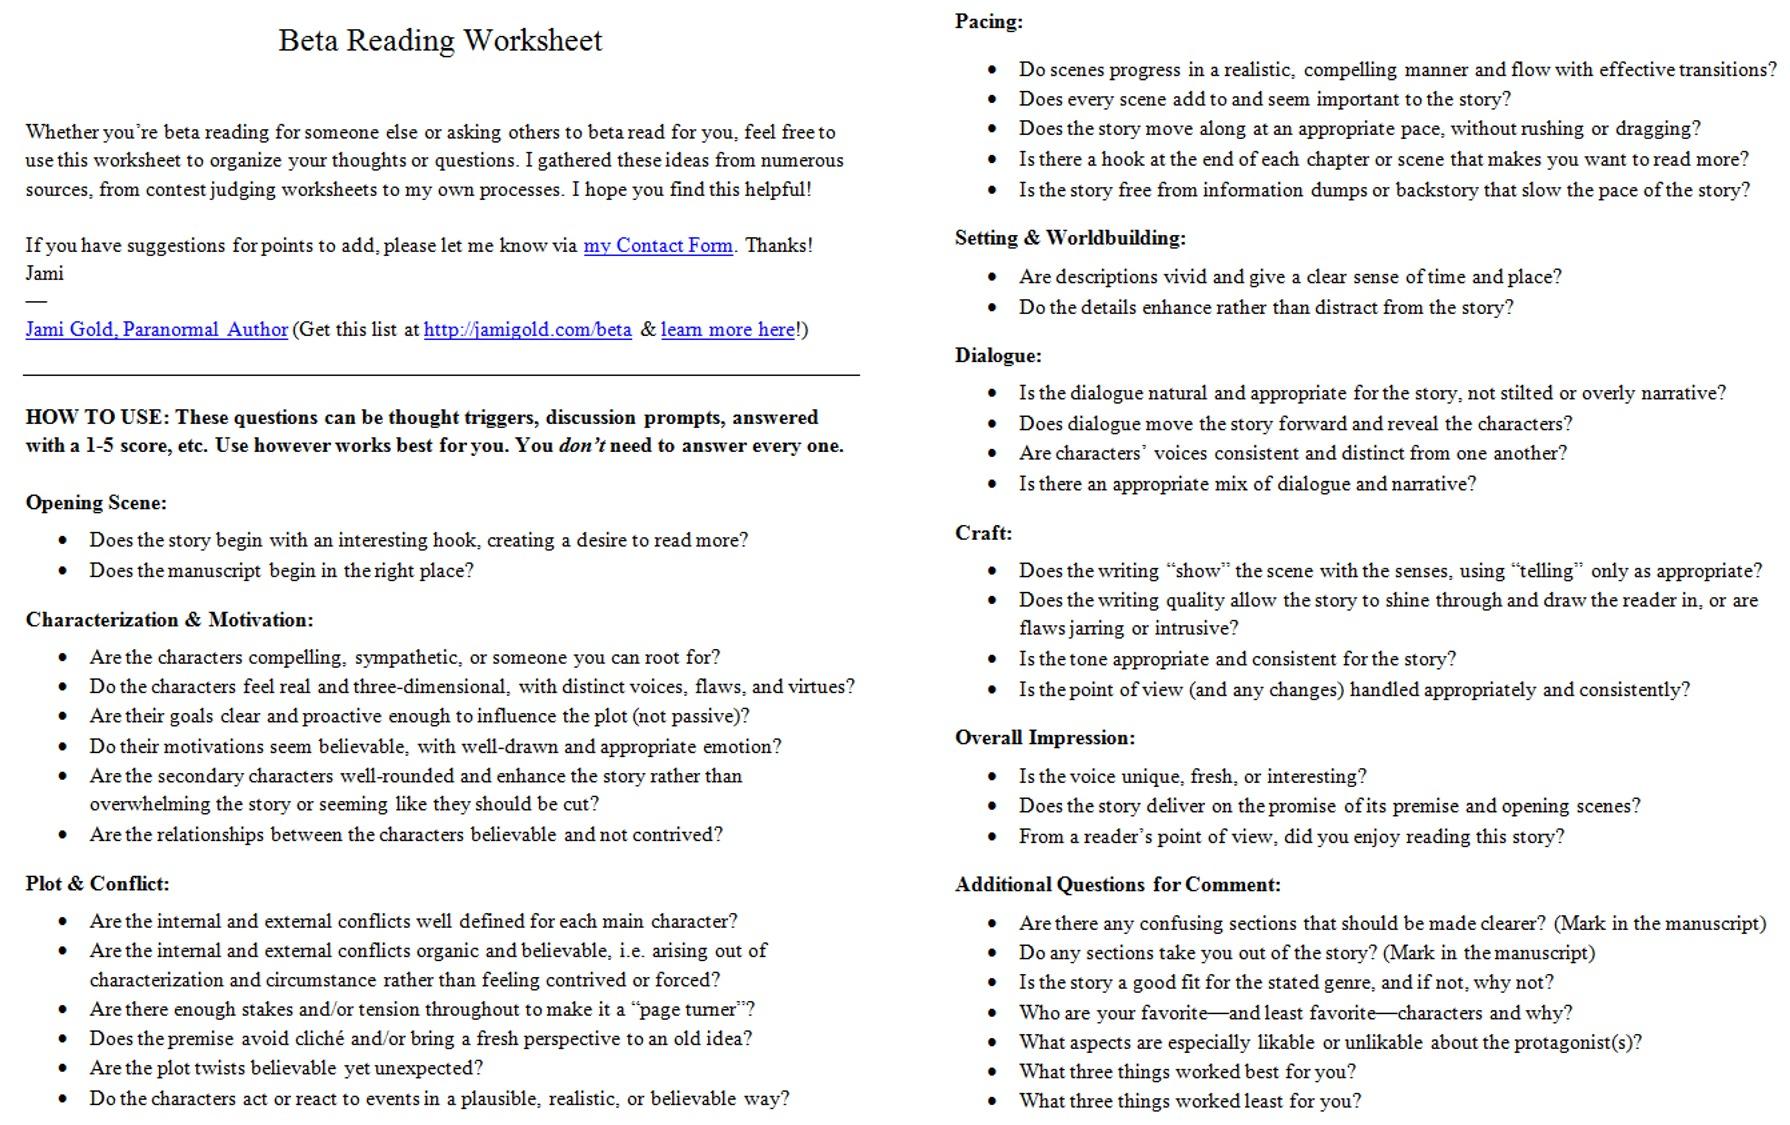 Weirdmailus  Prepossessing Worksheets For Writers  Jami Gold Paranormal Author With Marvelous Screen Shot Of The Twopage Beta Reading Worksheet With Nice Algebra Grade  Worksheets Also Division Worksheet For Grade  In Addition Divisibility Rules Worksheets Printable And Printable Cvc Worksheets As Well As Picture Adding Worksheets Additionally Spelling And Writing Worksheets From Jamigoldcom With Weirdmailus  Marvelous Worksheets For Writers  Jami Gold Paranormal Author With Nice Screen Shot Of The Twopage Beta Reading Worksheet And Prepossessing Algebra Grade  Worksheets Also Division Worksheet For Grade  In Addition Divisibility Rules Worksheets Printable From Jamigoldcom